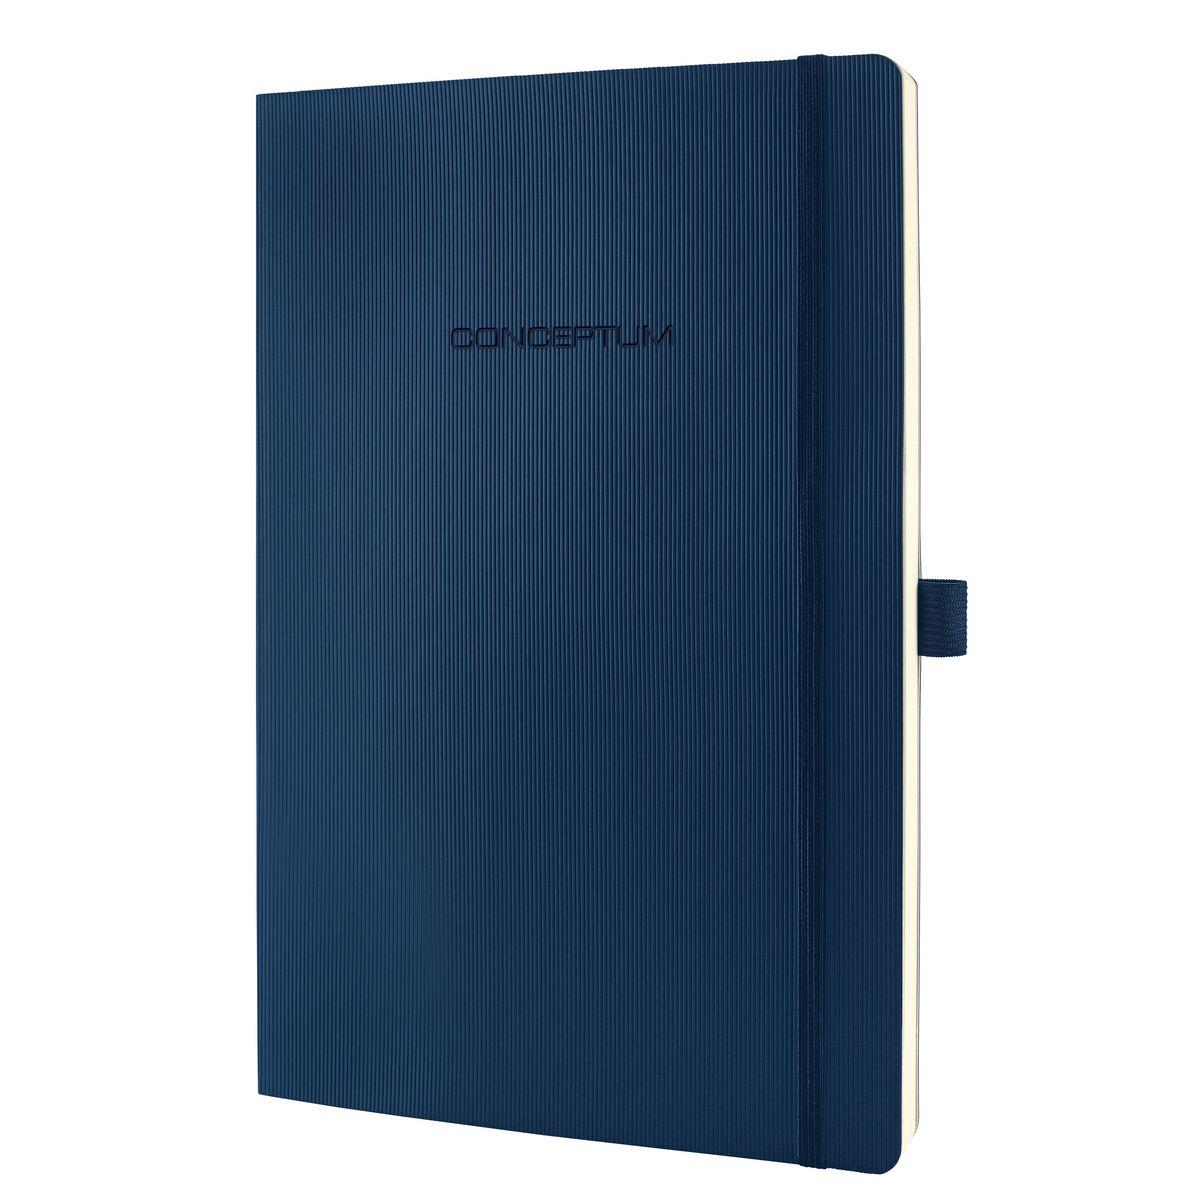 Sigel Concept Notebook Softcover Lined 80gsm 194pp PEFC A4 Blue Ref CO317